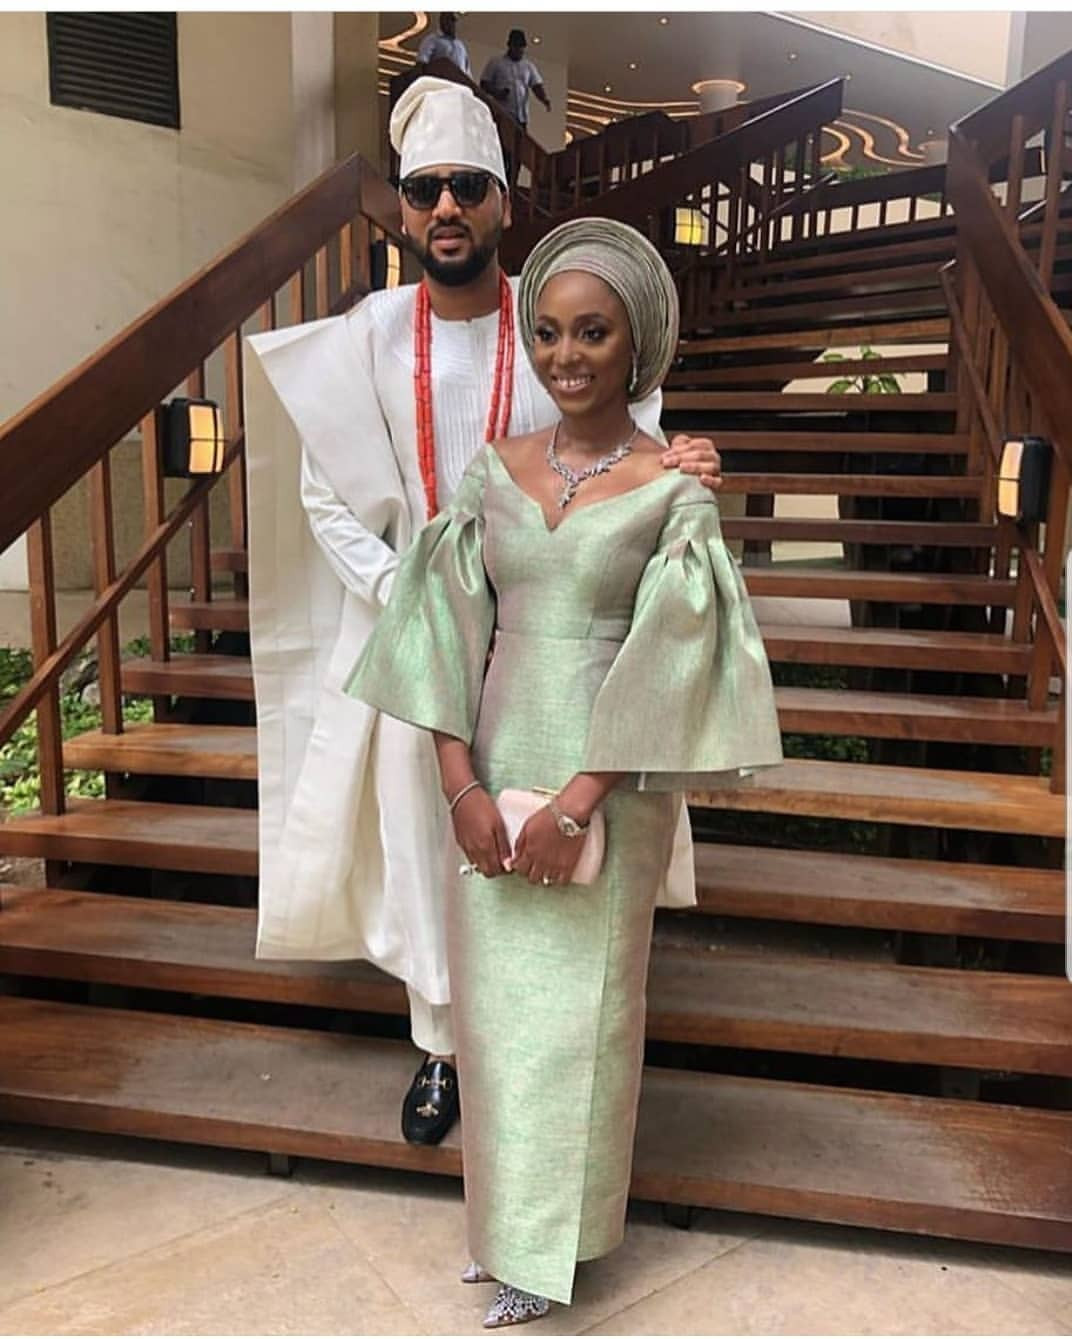 Photos from the traditional wedding of media personality, Illrymz